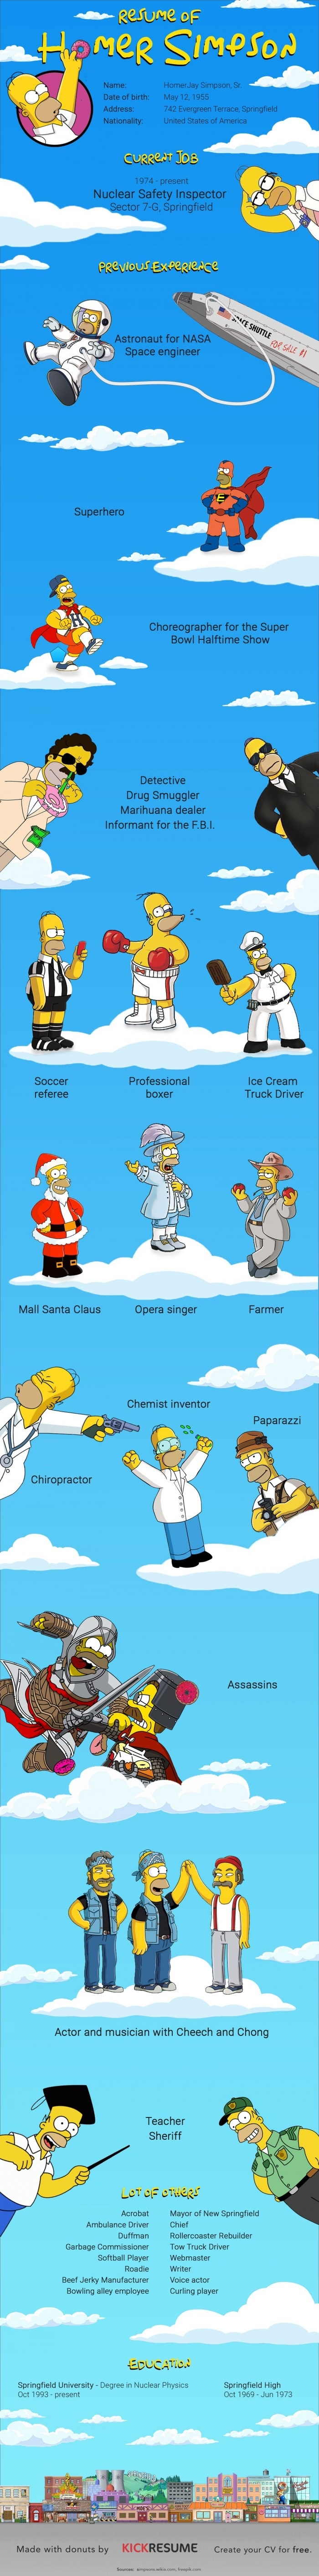 Homer Simpson's resume (With images) Homer simpson, The